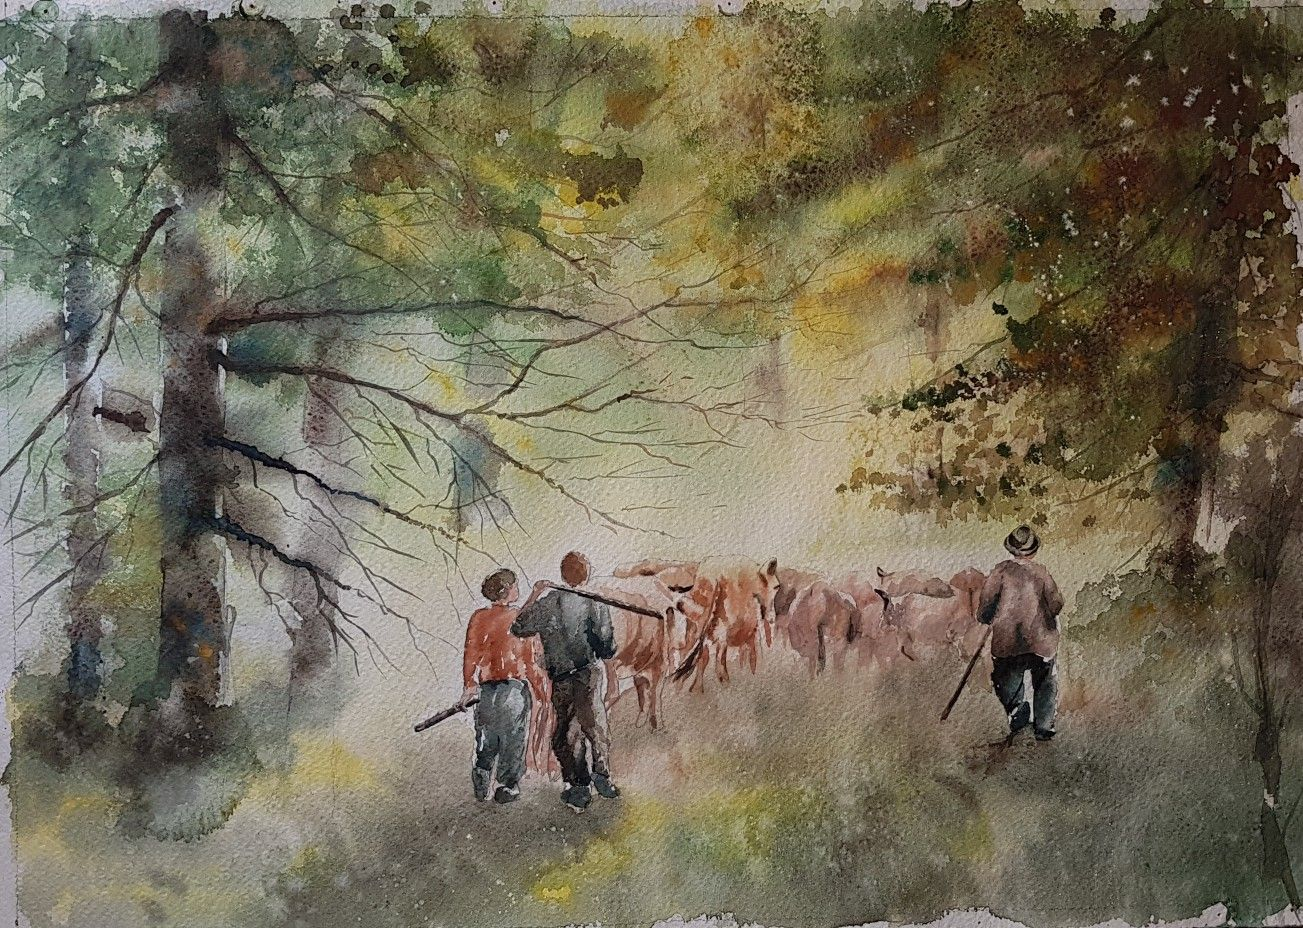 The Shepherds Watercolour Painting 52 5 37 Cm By Hamid Javadi Art Teaches You The Philosophy Of Life It Shows Y Painting Art Watercolour Painting